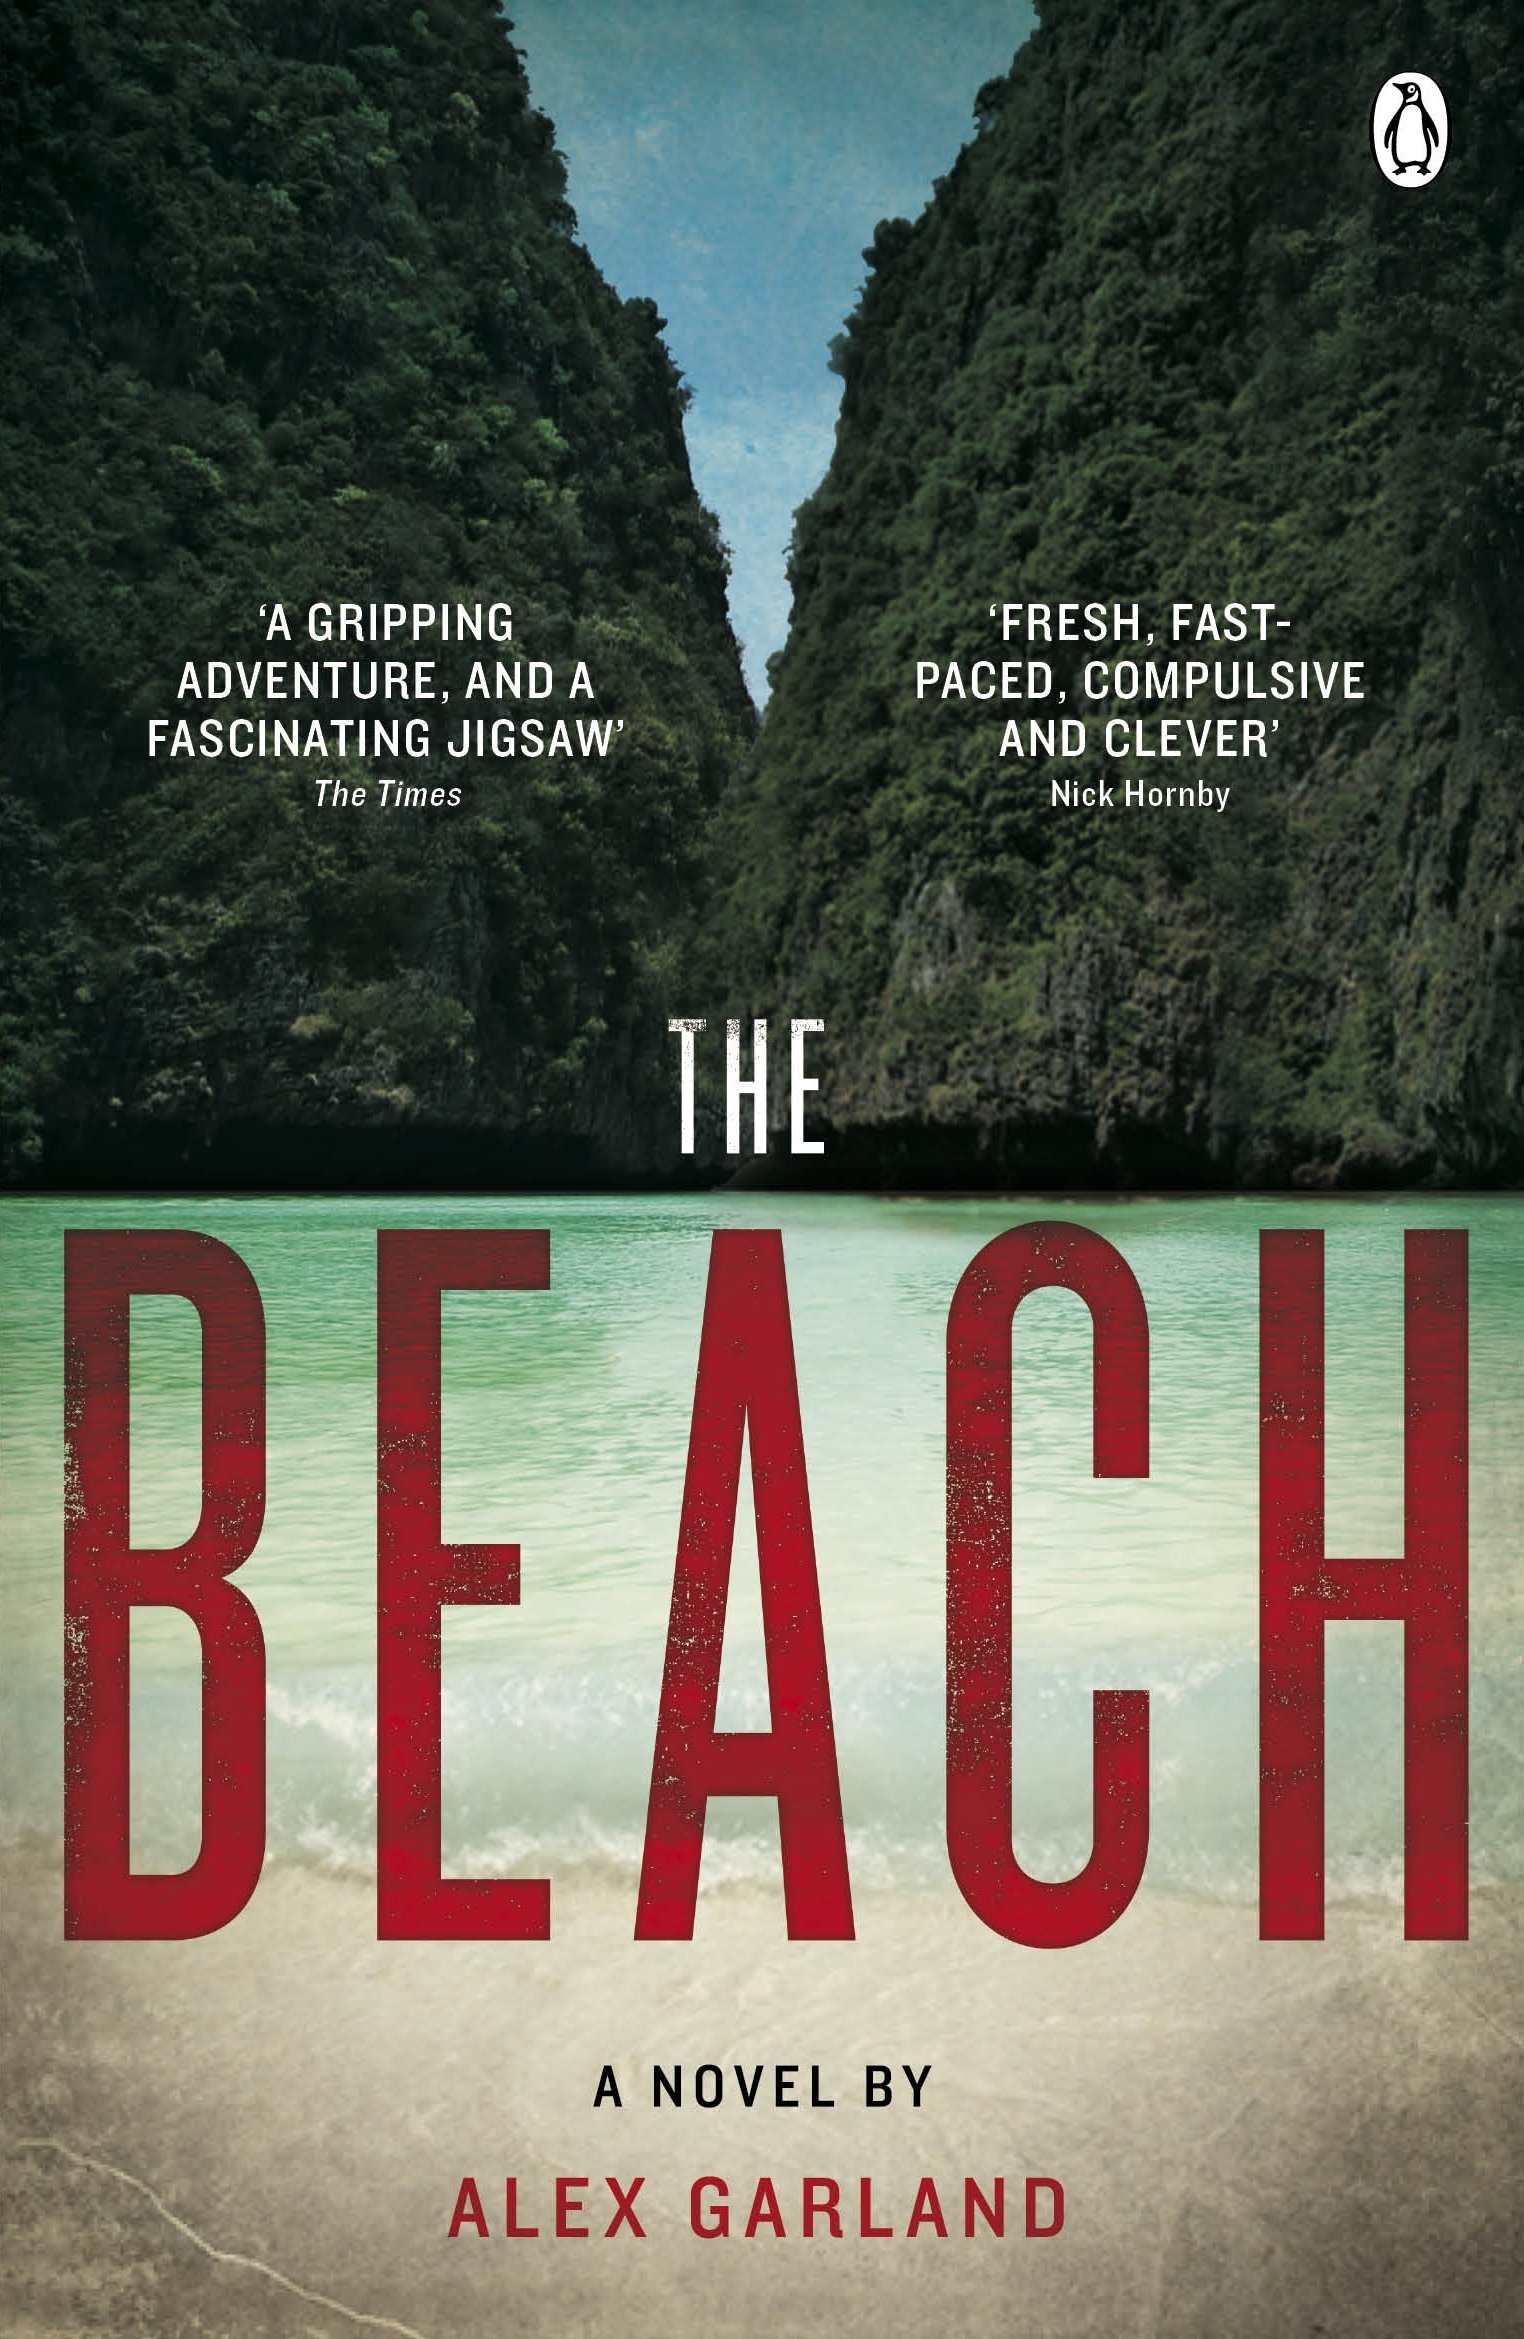 Résultats de recherche d'images pour « The Beach, by Alex Garland back cover »